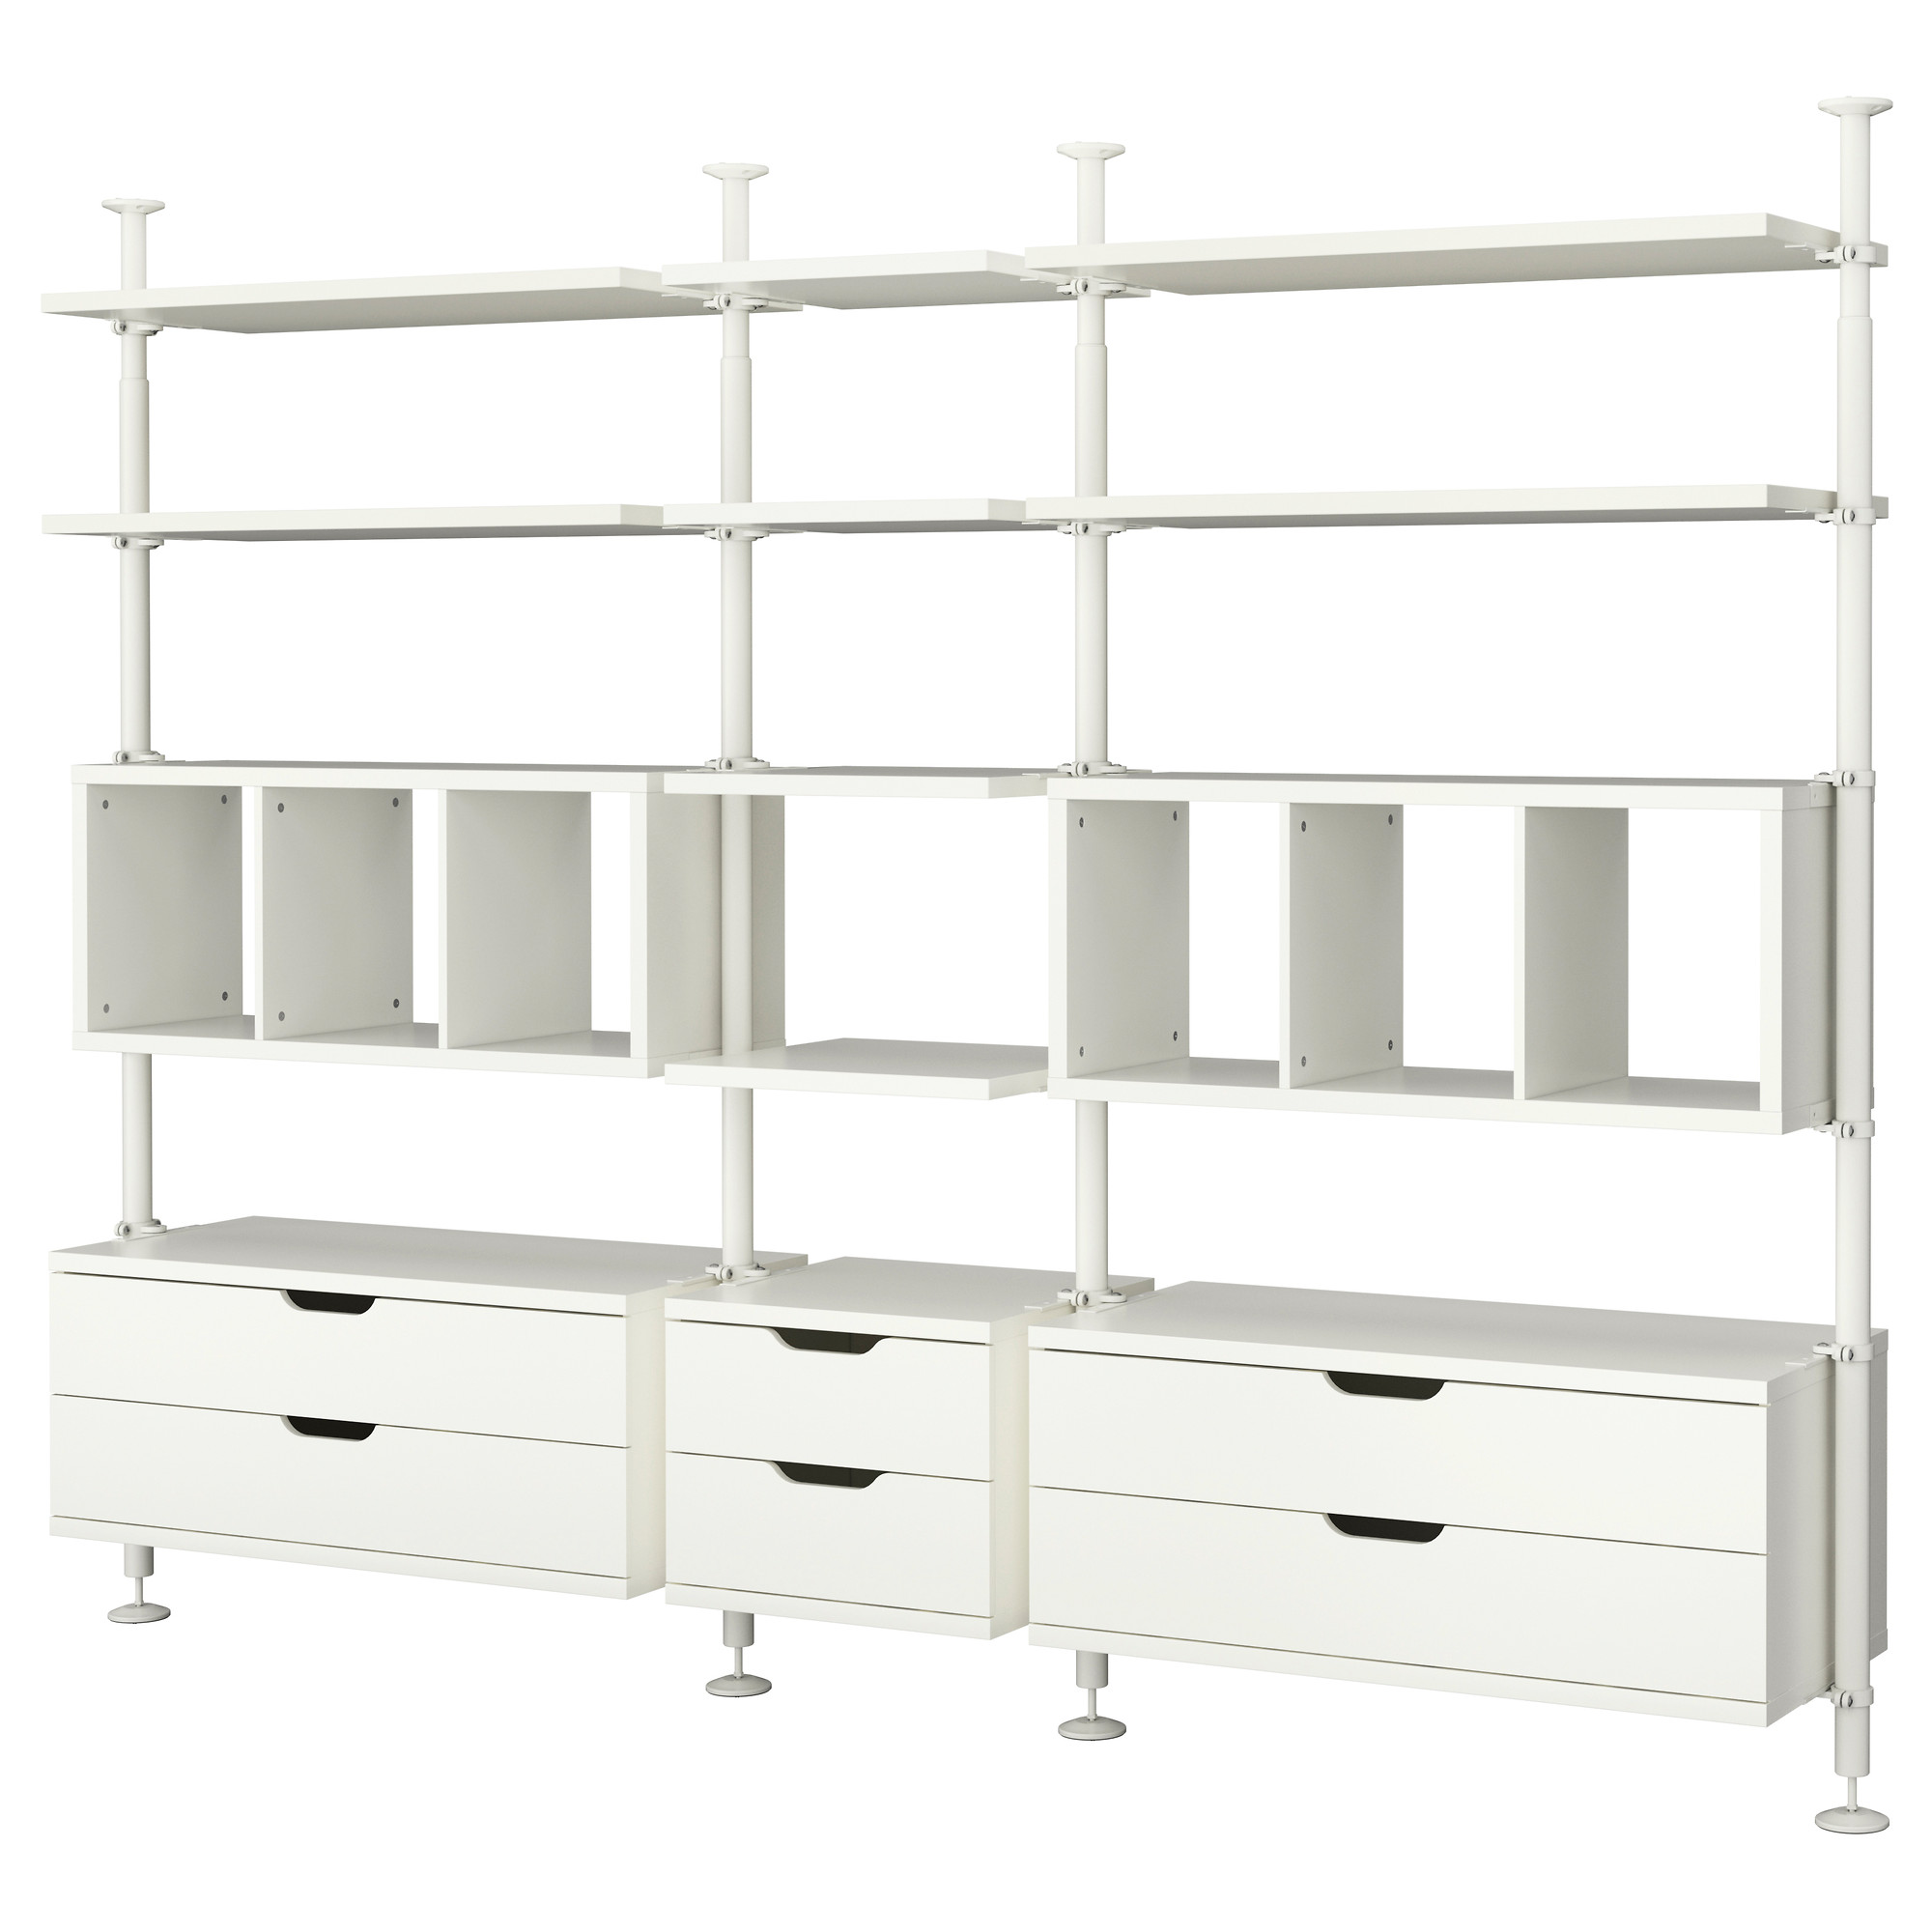 design storage org white closet childcarepartnerships shelf l ideas idea cabinet wardrobe ikea with